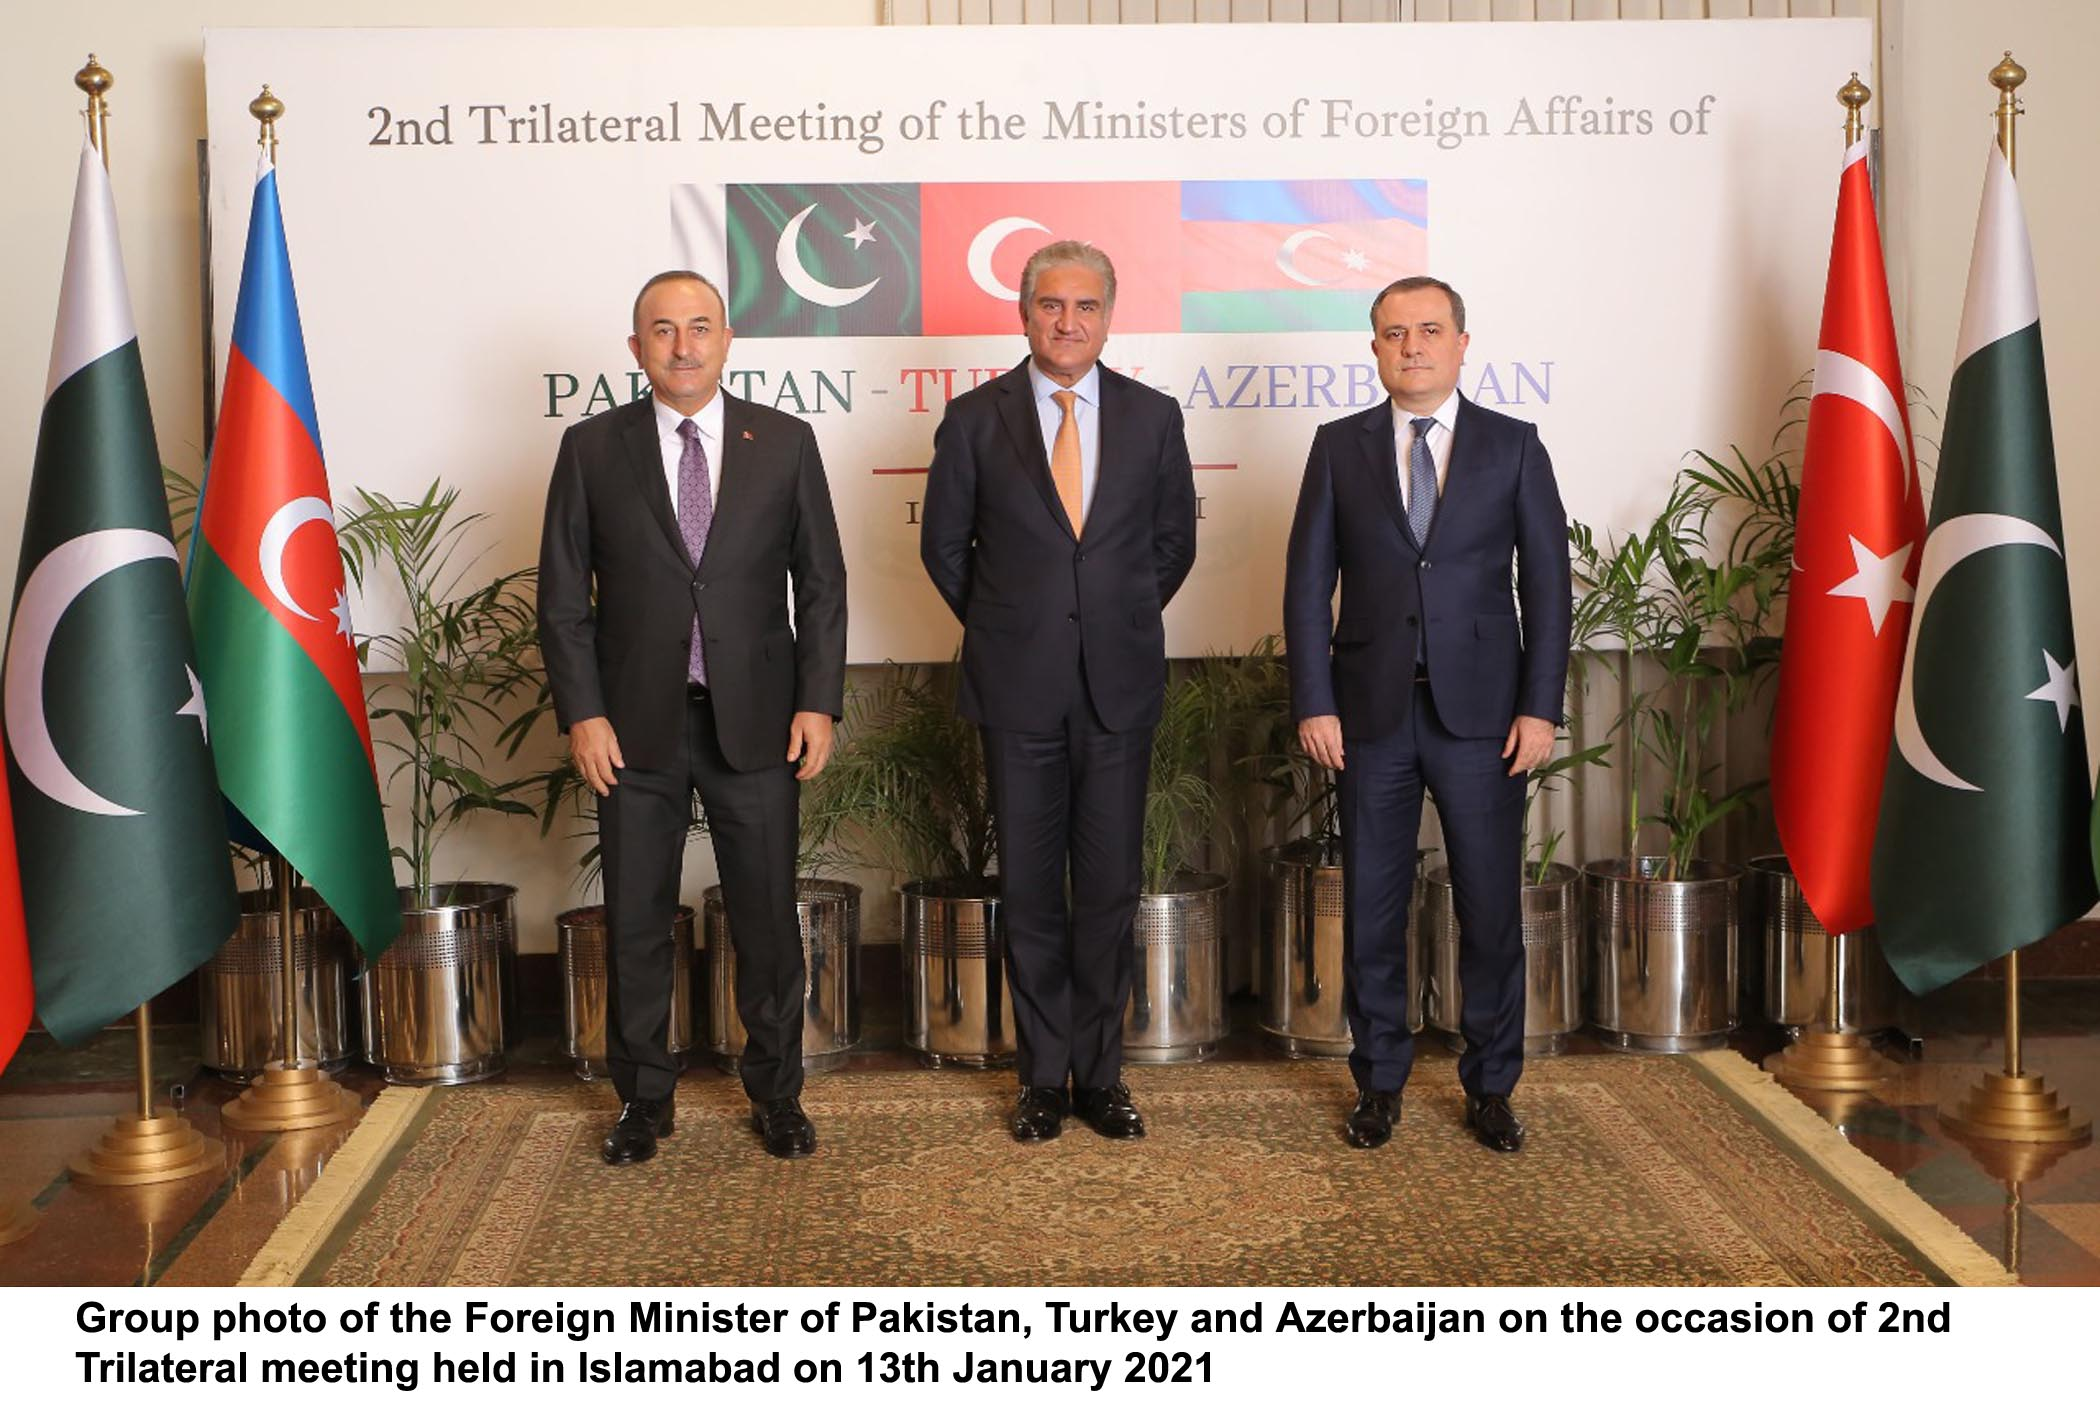 2nd round of talks among Pak, Turkish, Azerbaijan FMs today